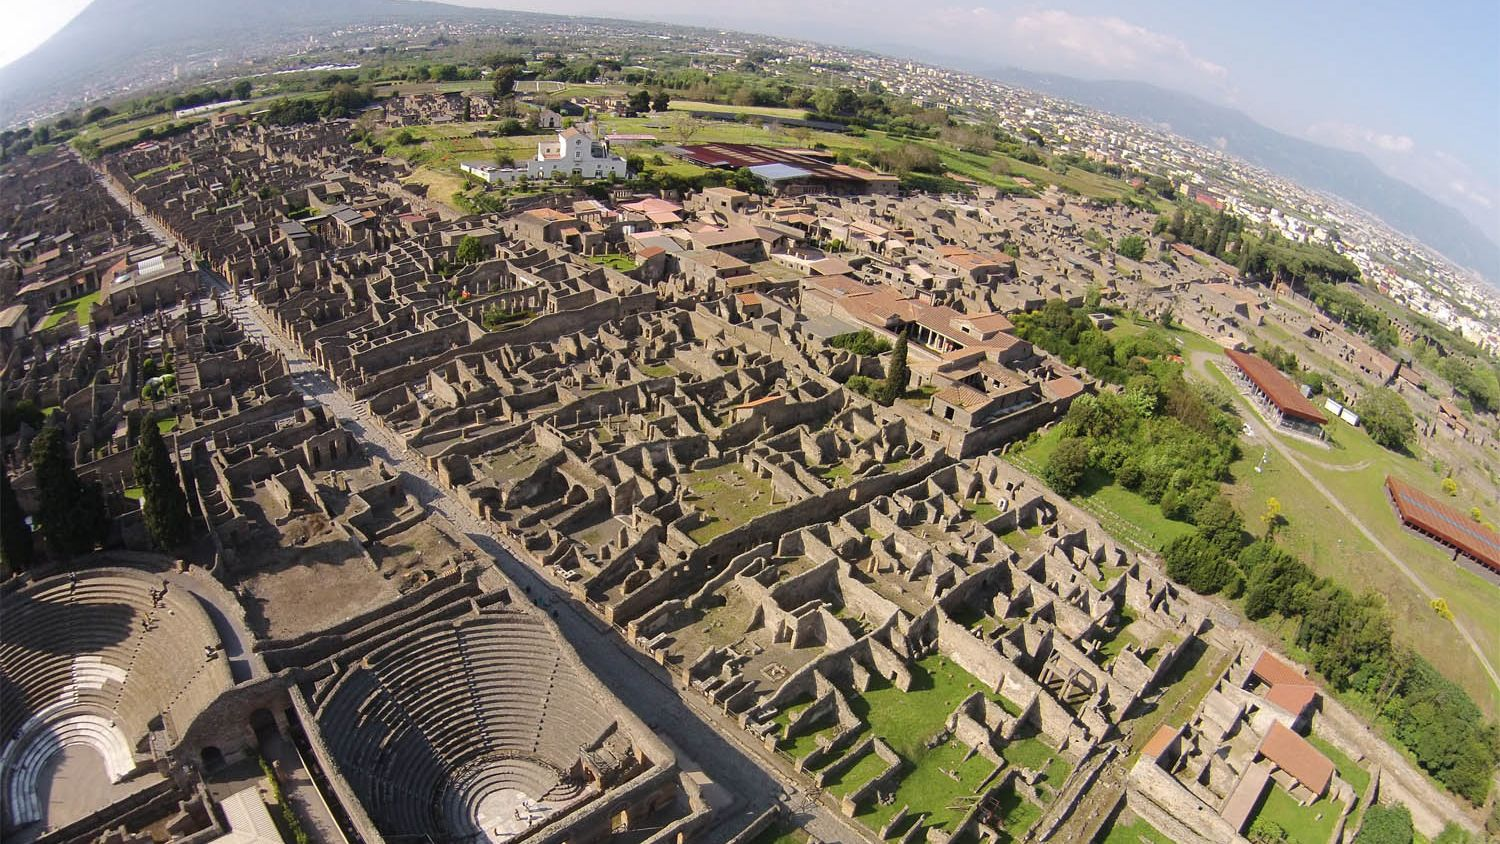 Aerial view of Pompeii ruins in Italy